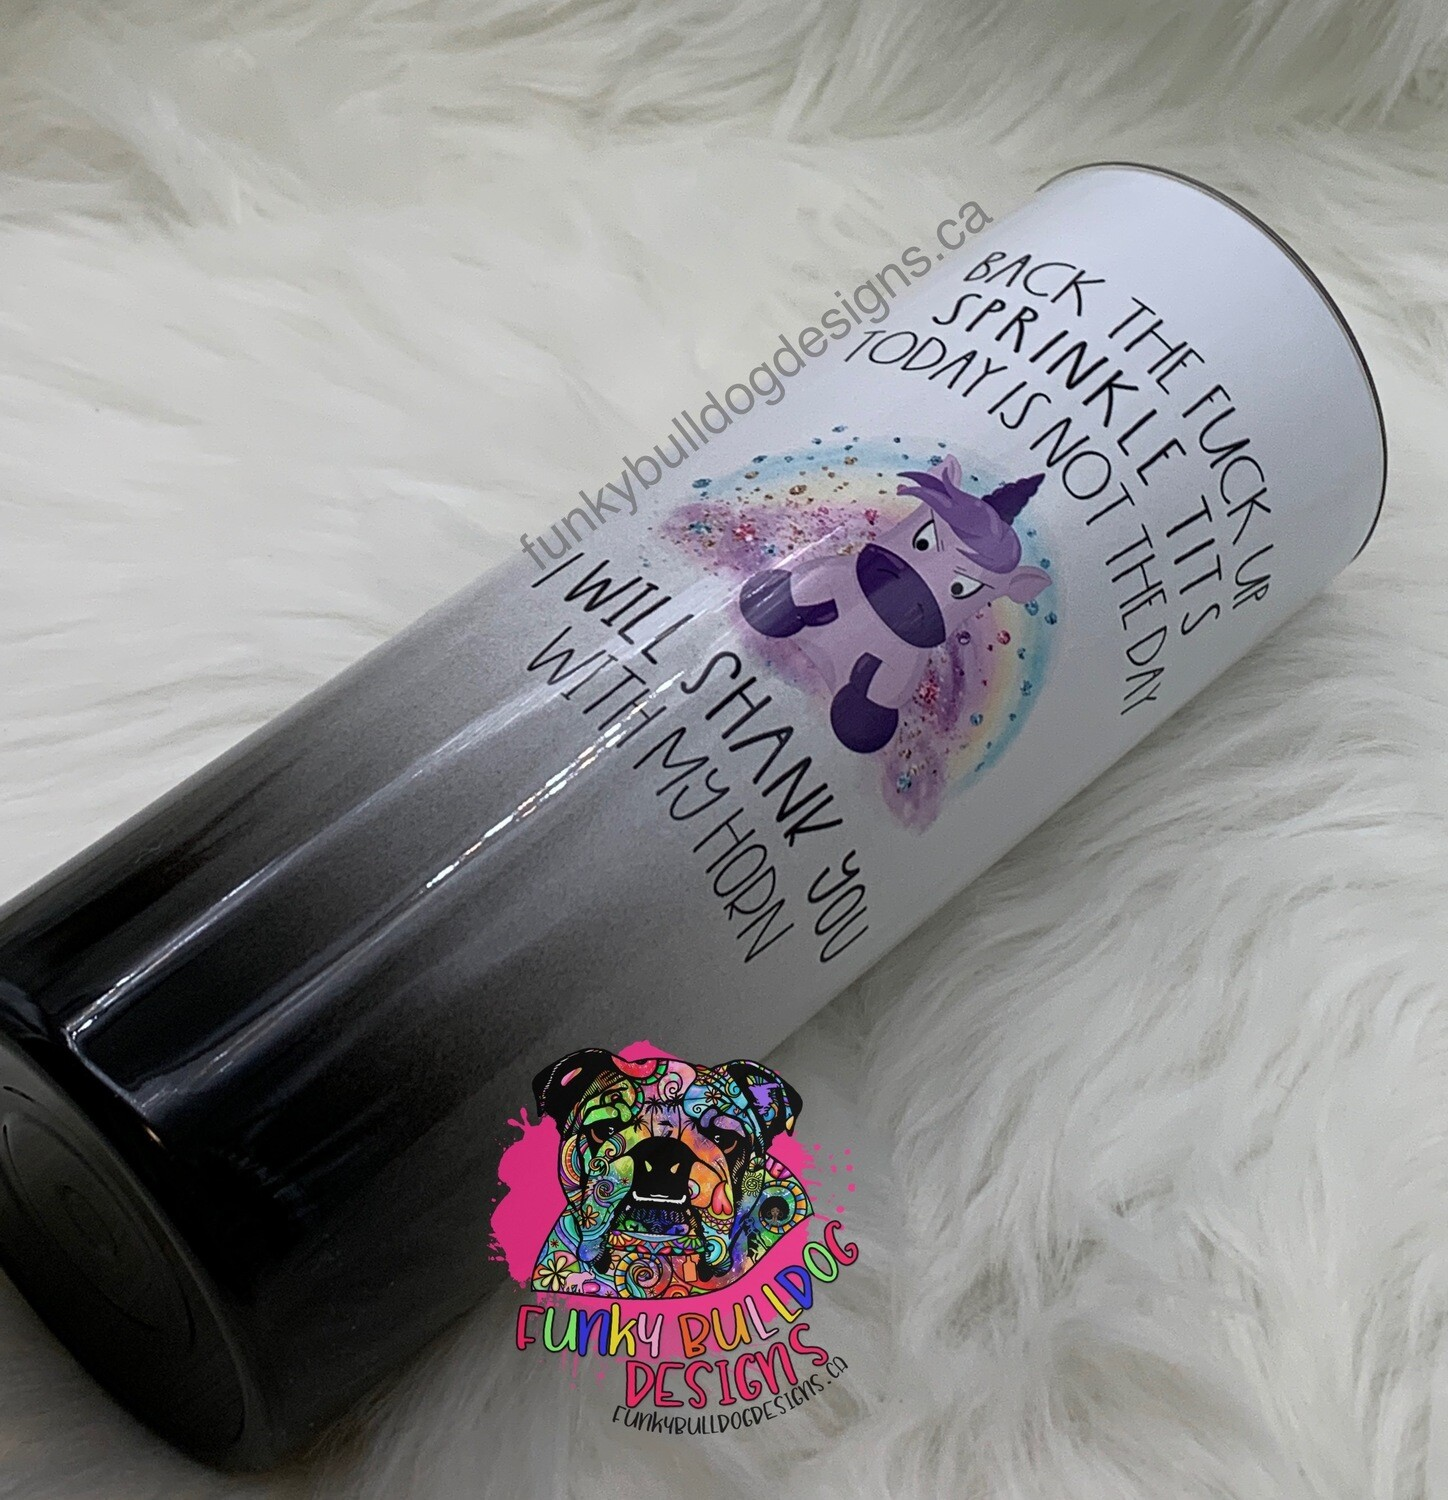 20oz Stainless Steel Tumbler - Unicorn sprinkle tits, will shank you with my horn